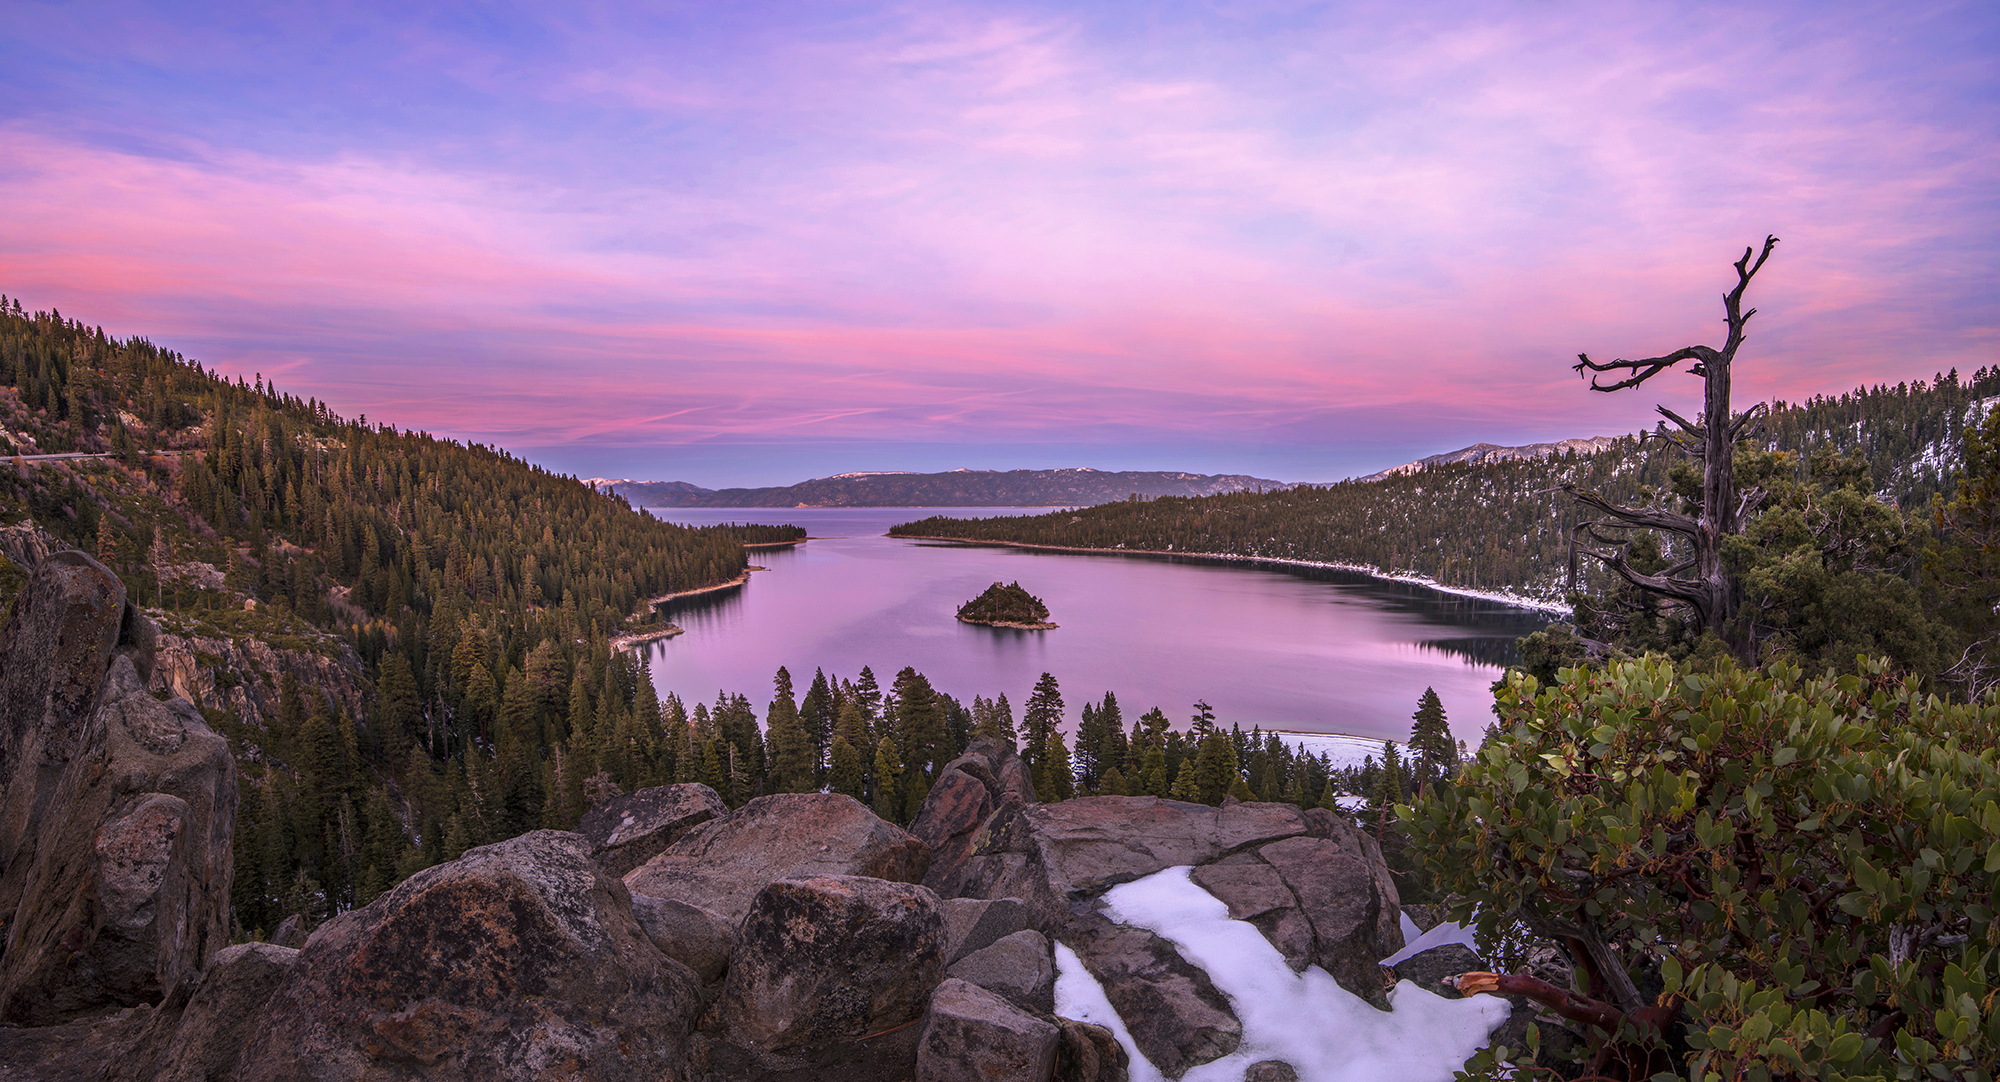 emerald bay sunset 11-18